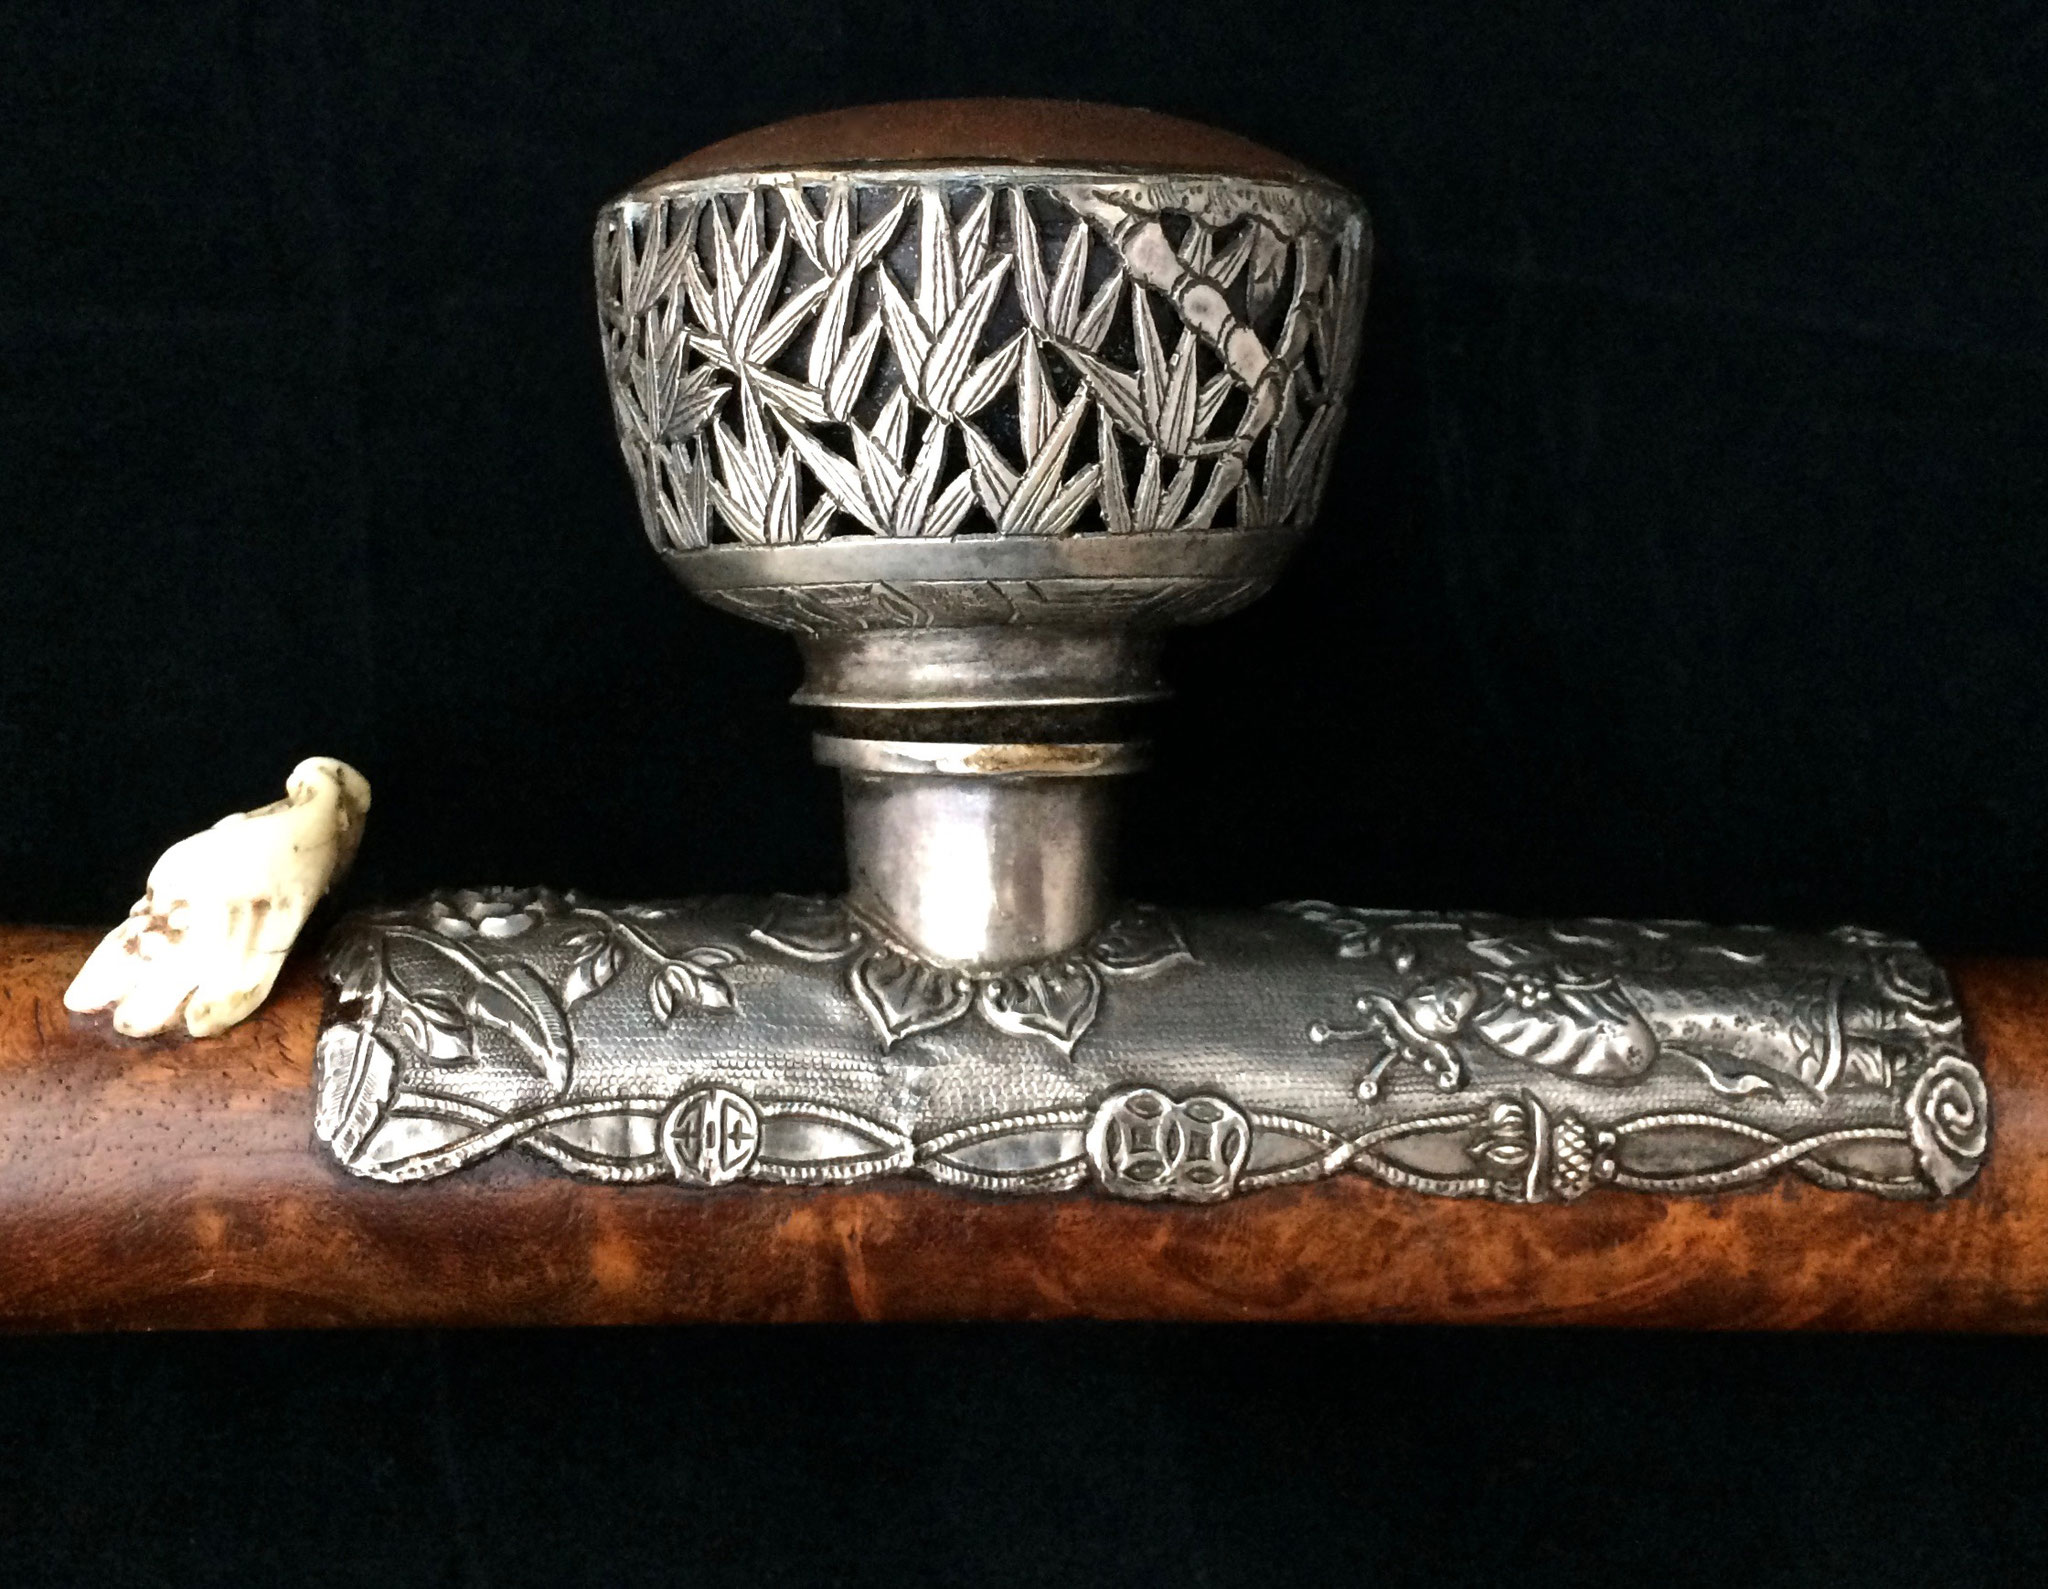 Silver bowl and saddle on burlwood pipe (–> Pipes)